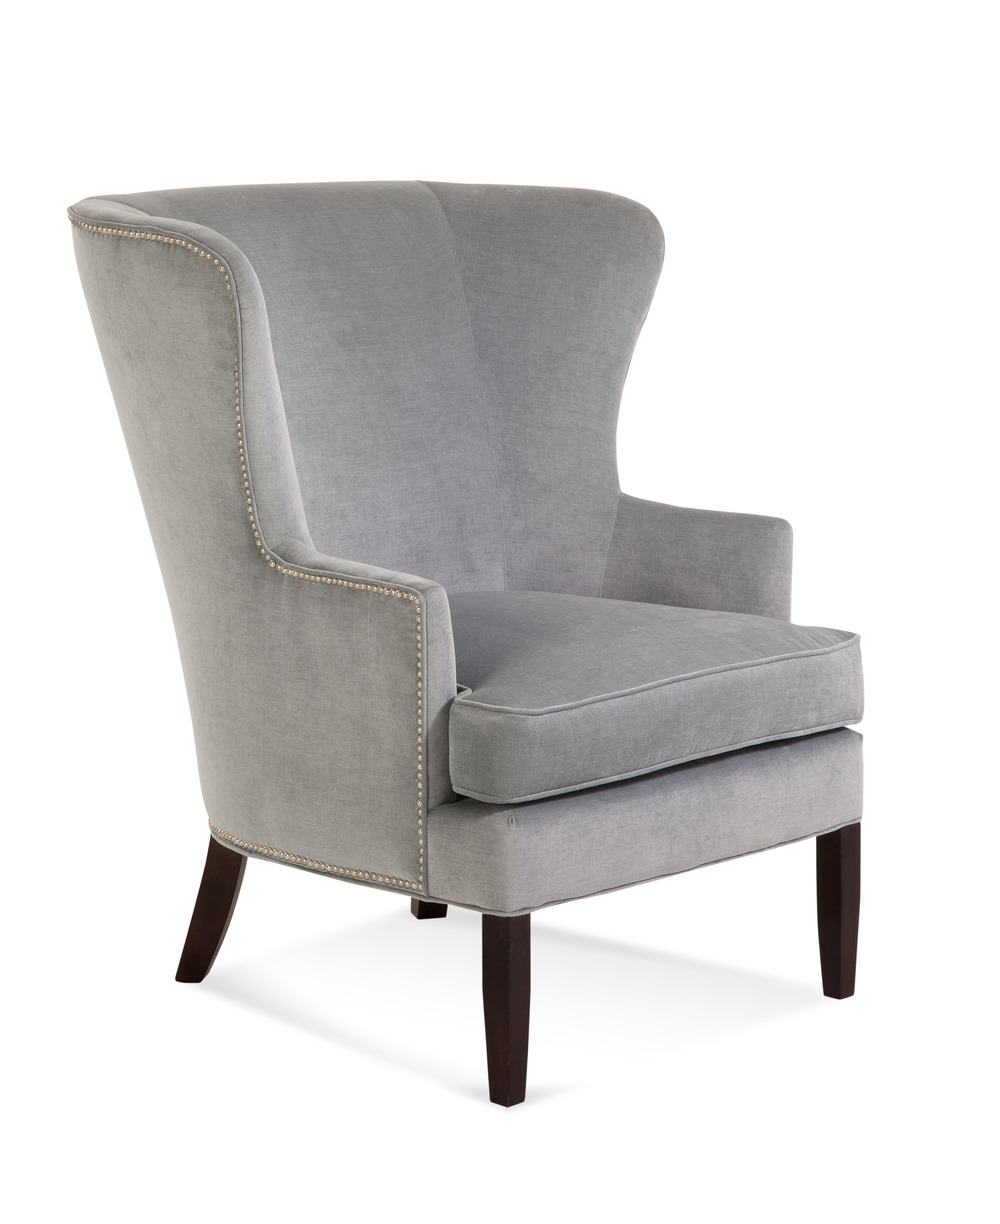 Tredwell Chair with Small Nailheads